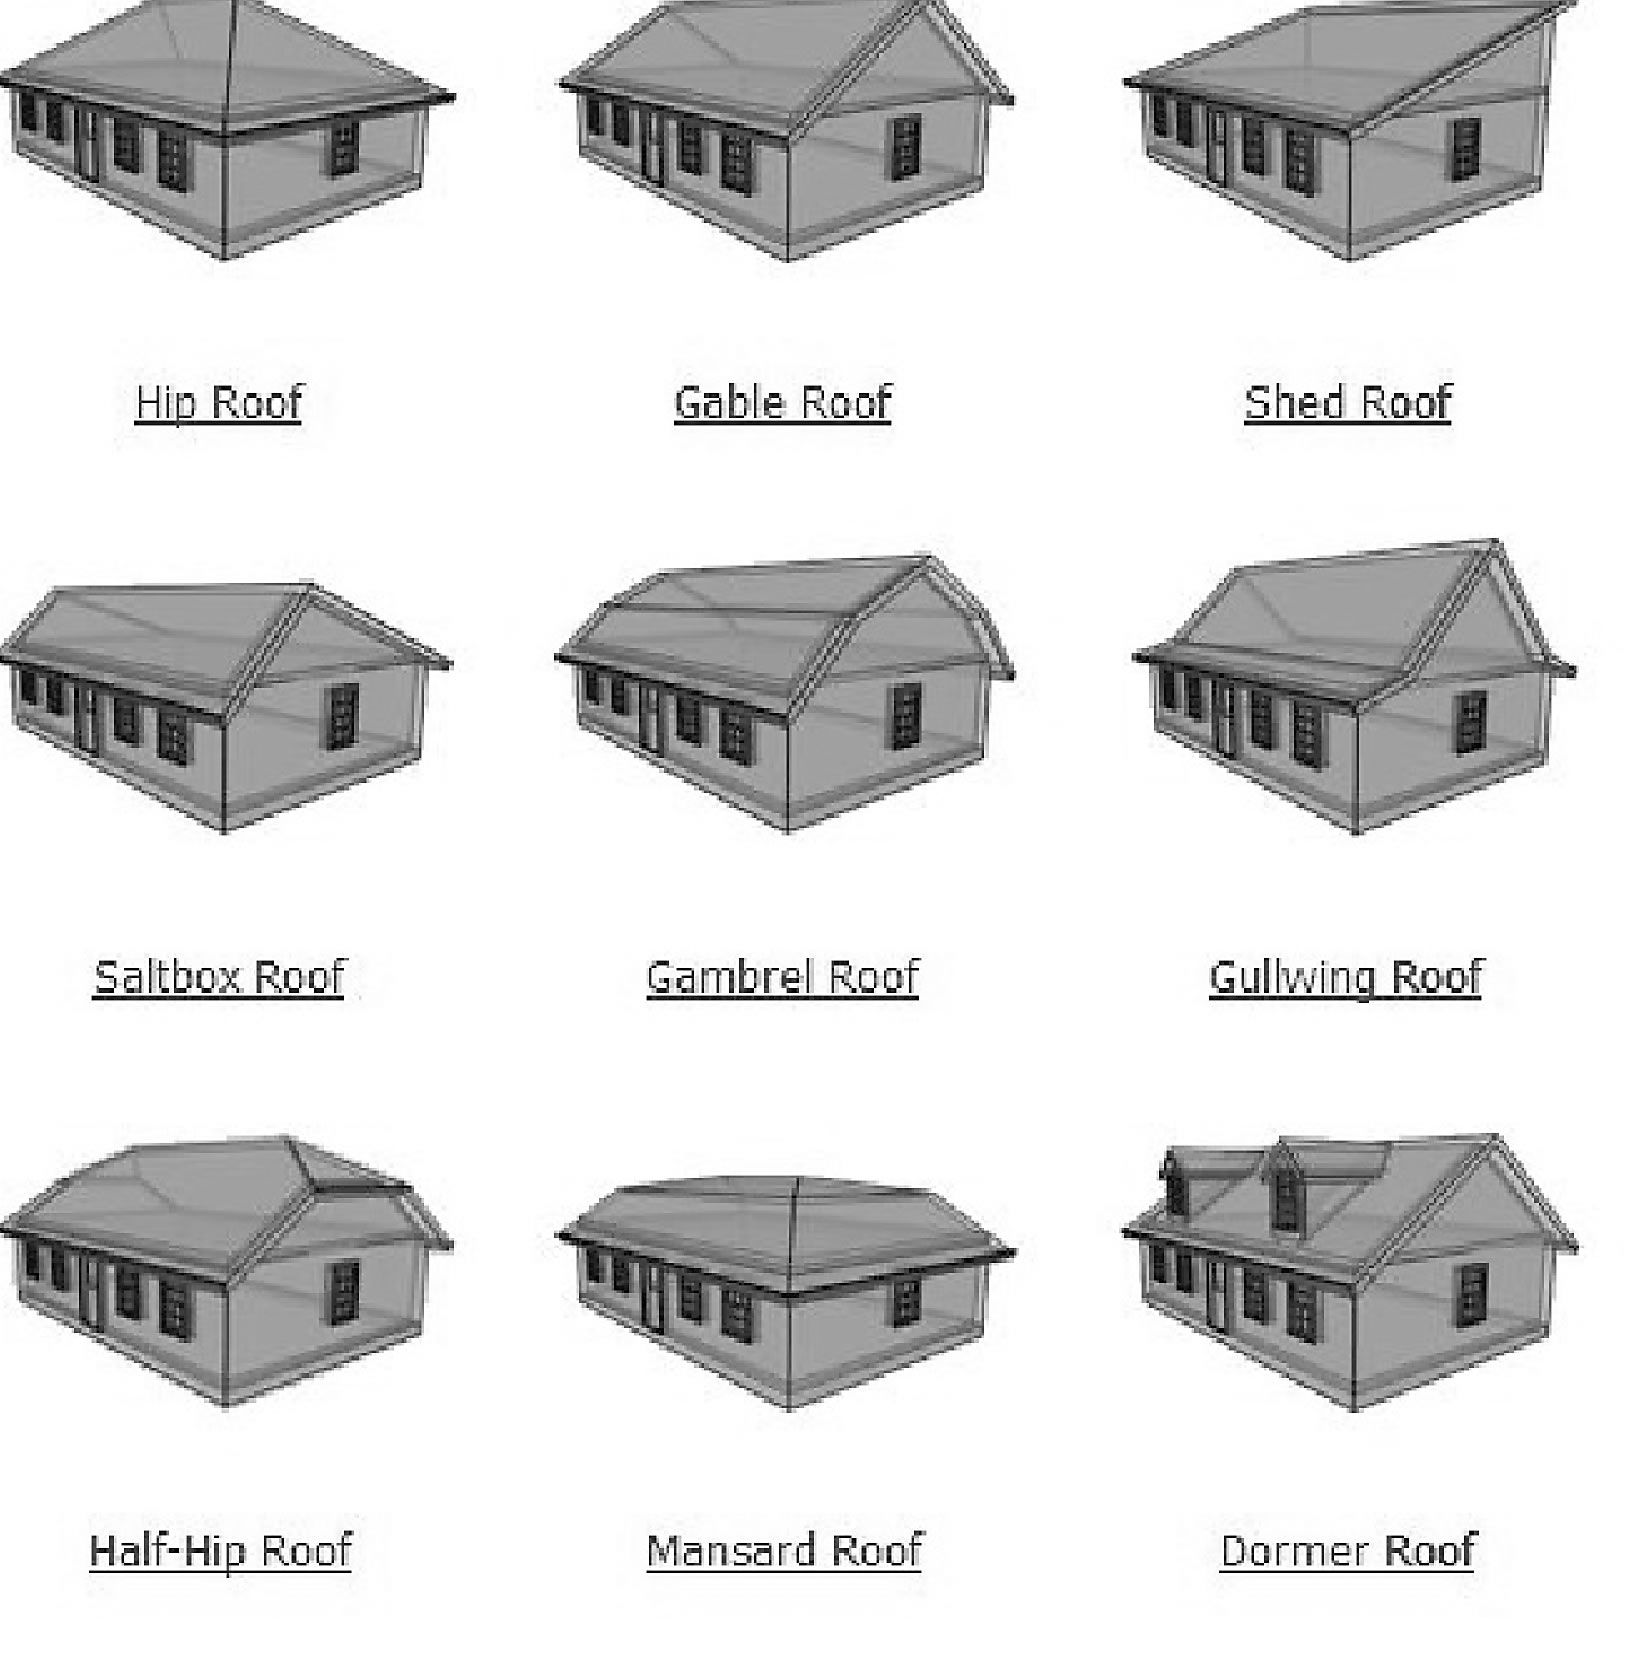 French roof styles roofs and shed dormer roofs they for Hip roof design plans